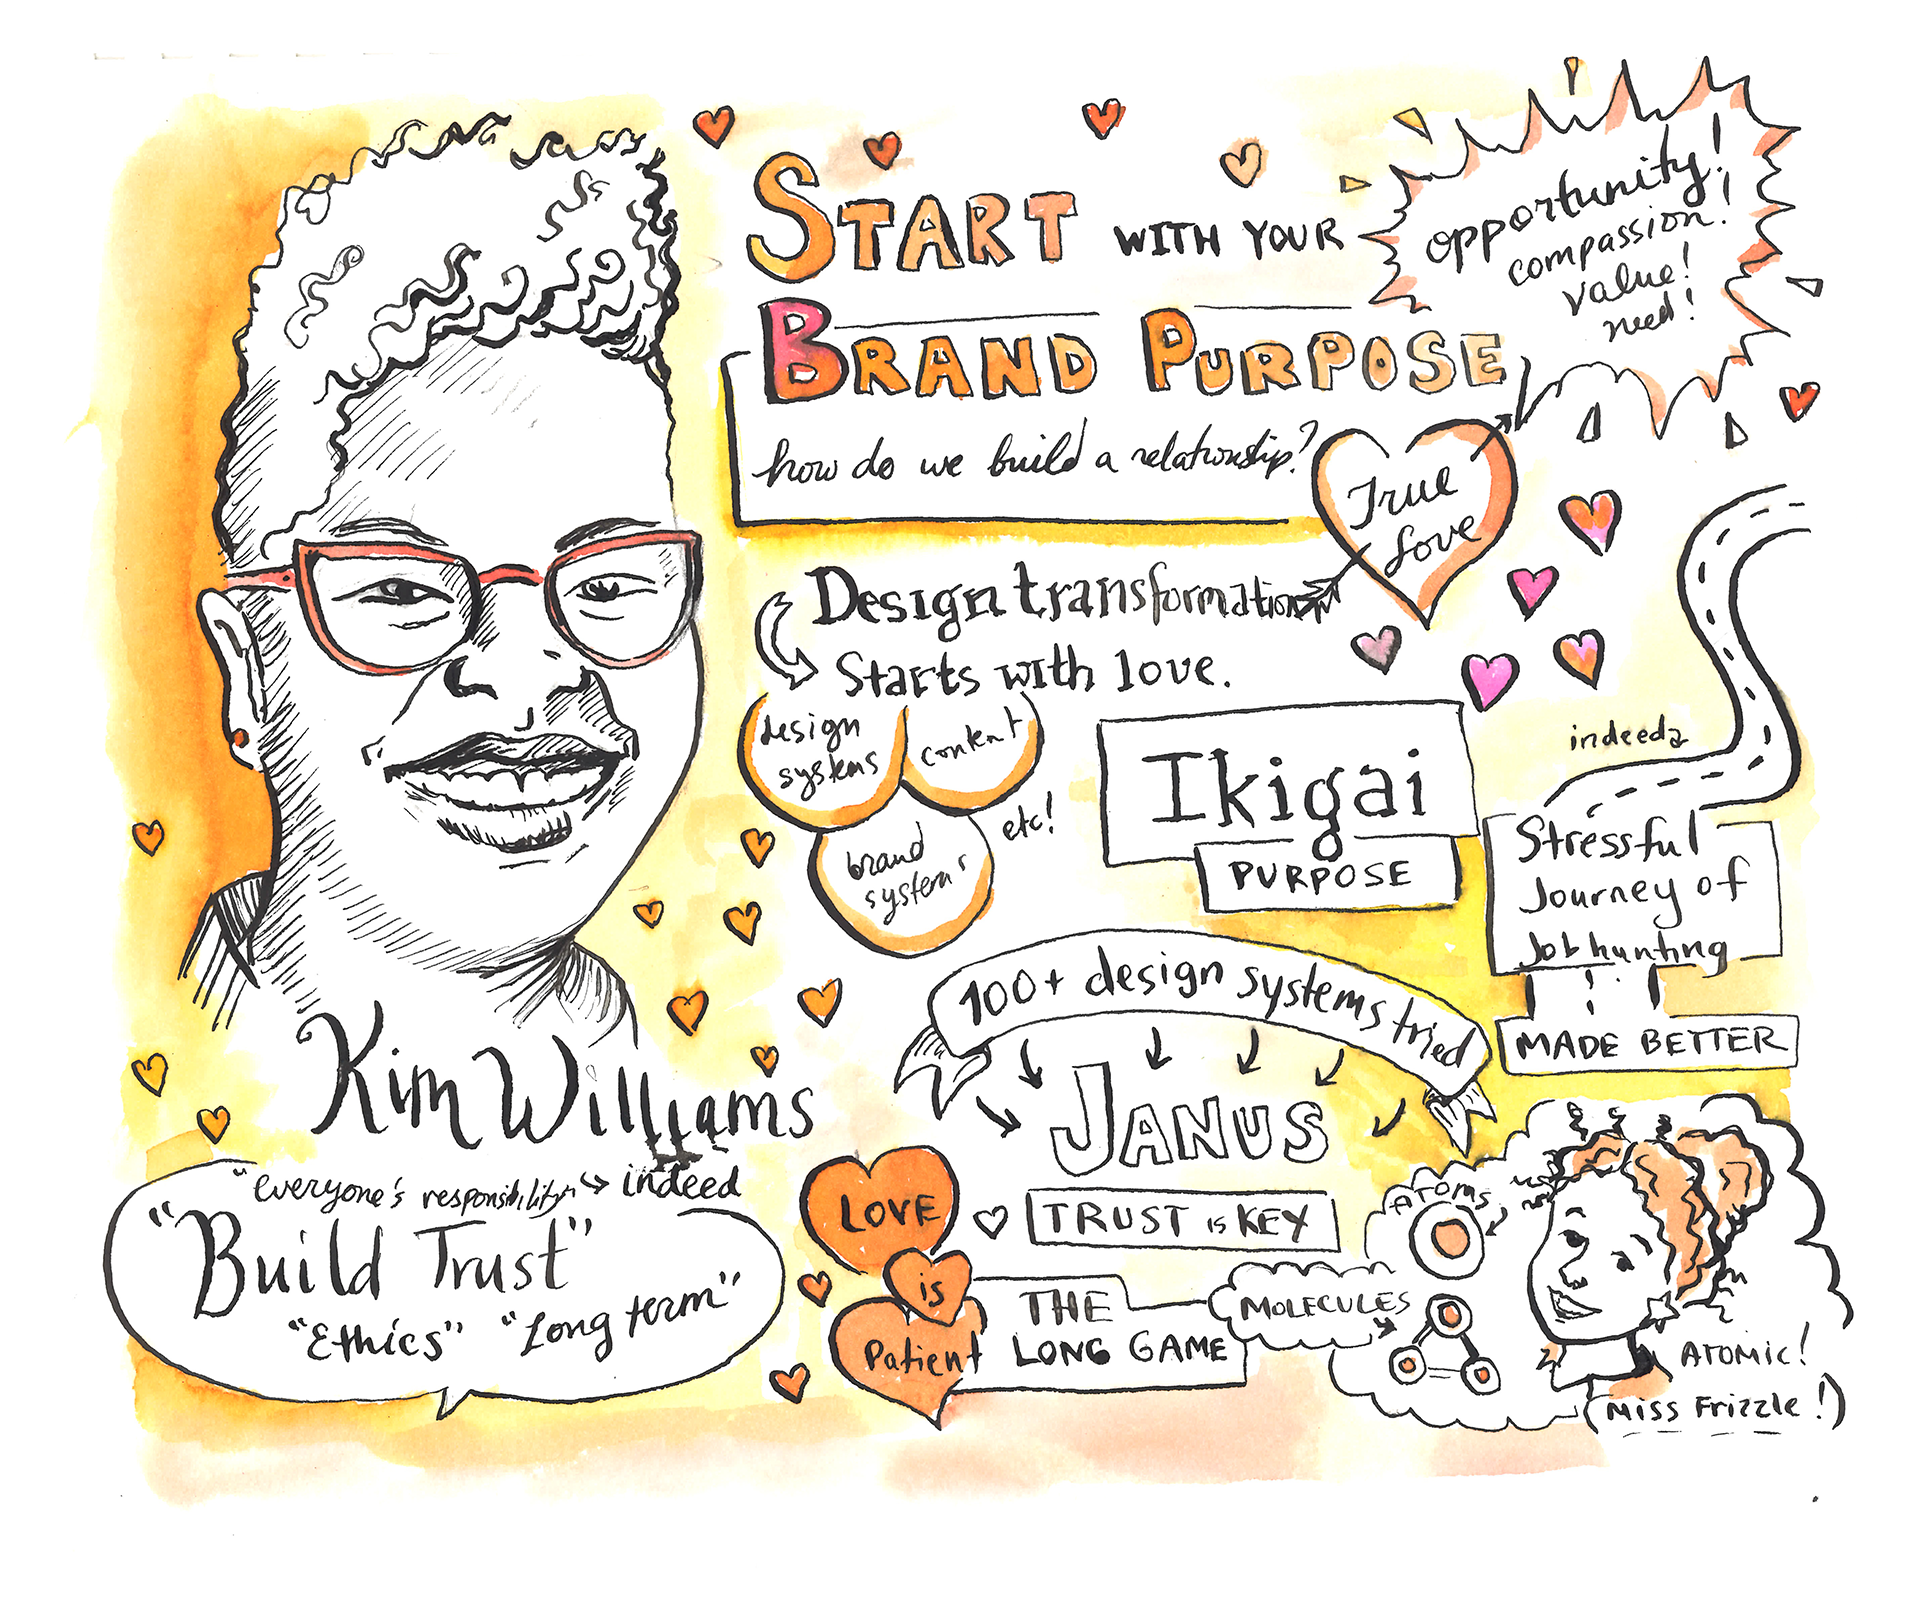 Start with Your Brand Purpose